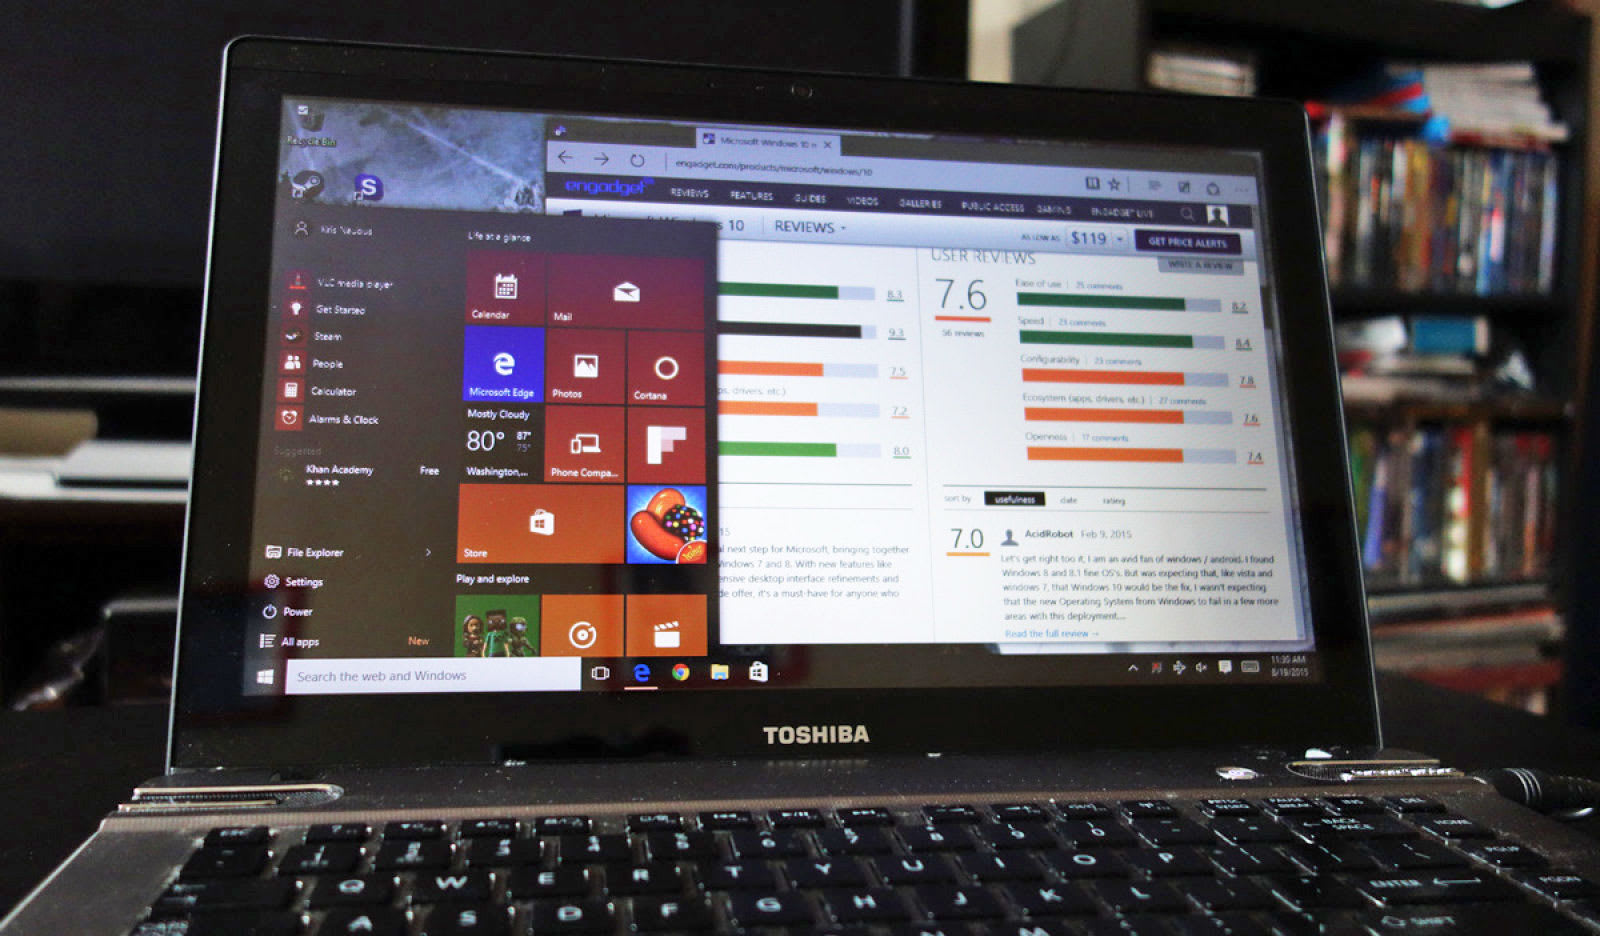 Microsoft is using AI to make Windows 10 updates smoother